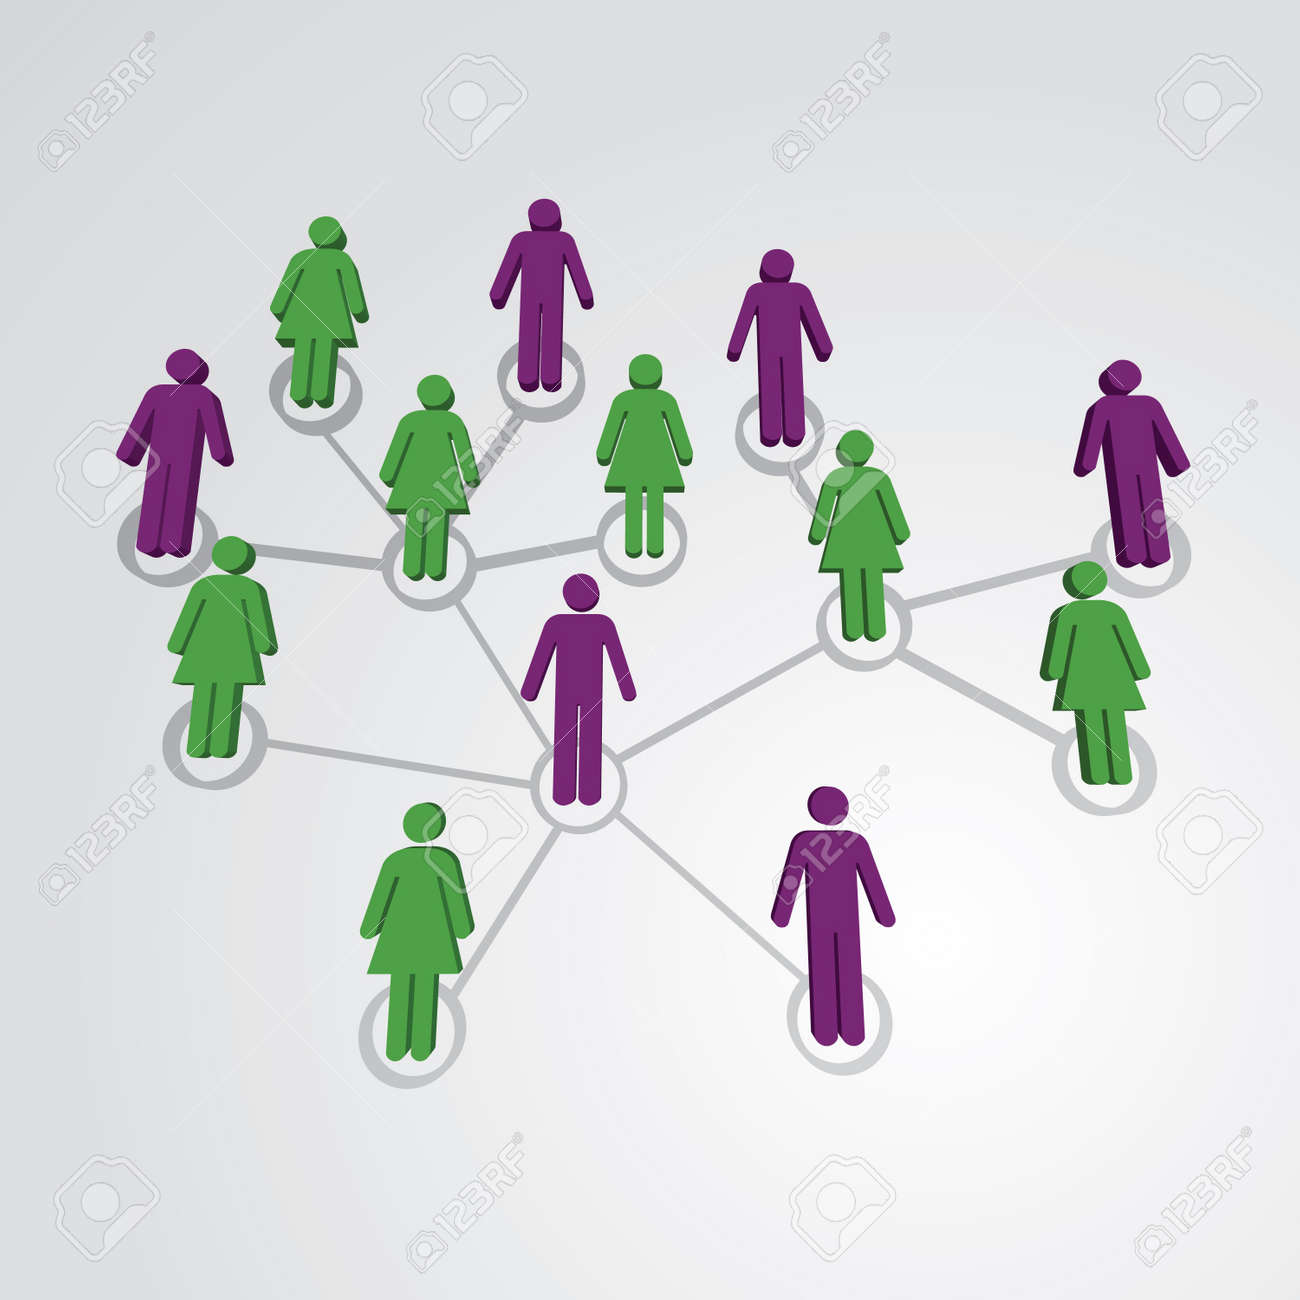 Men and women in social network map - illustration Stock Vector - 12861015